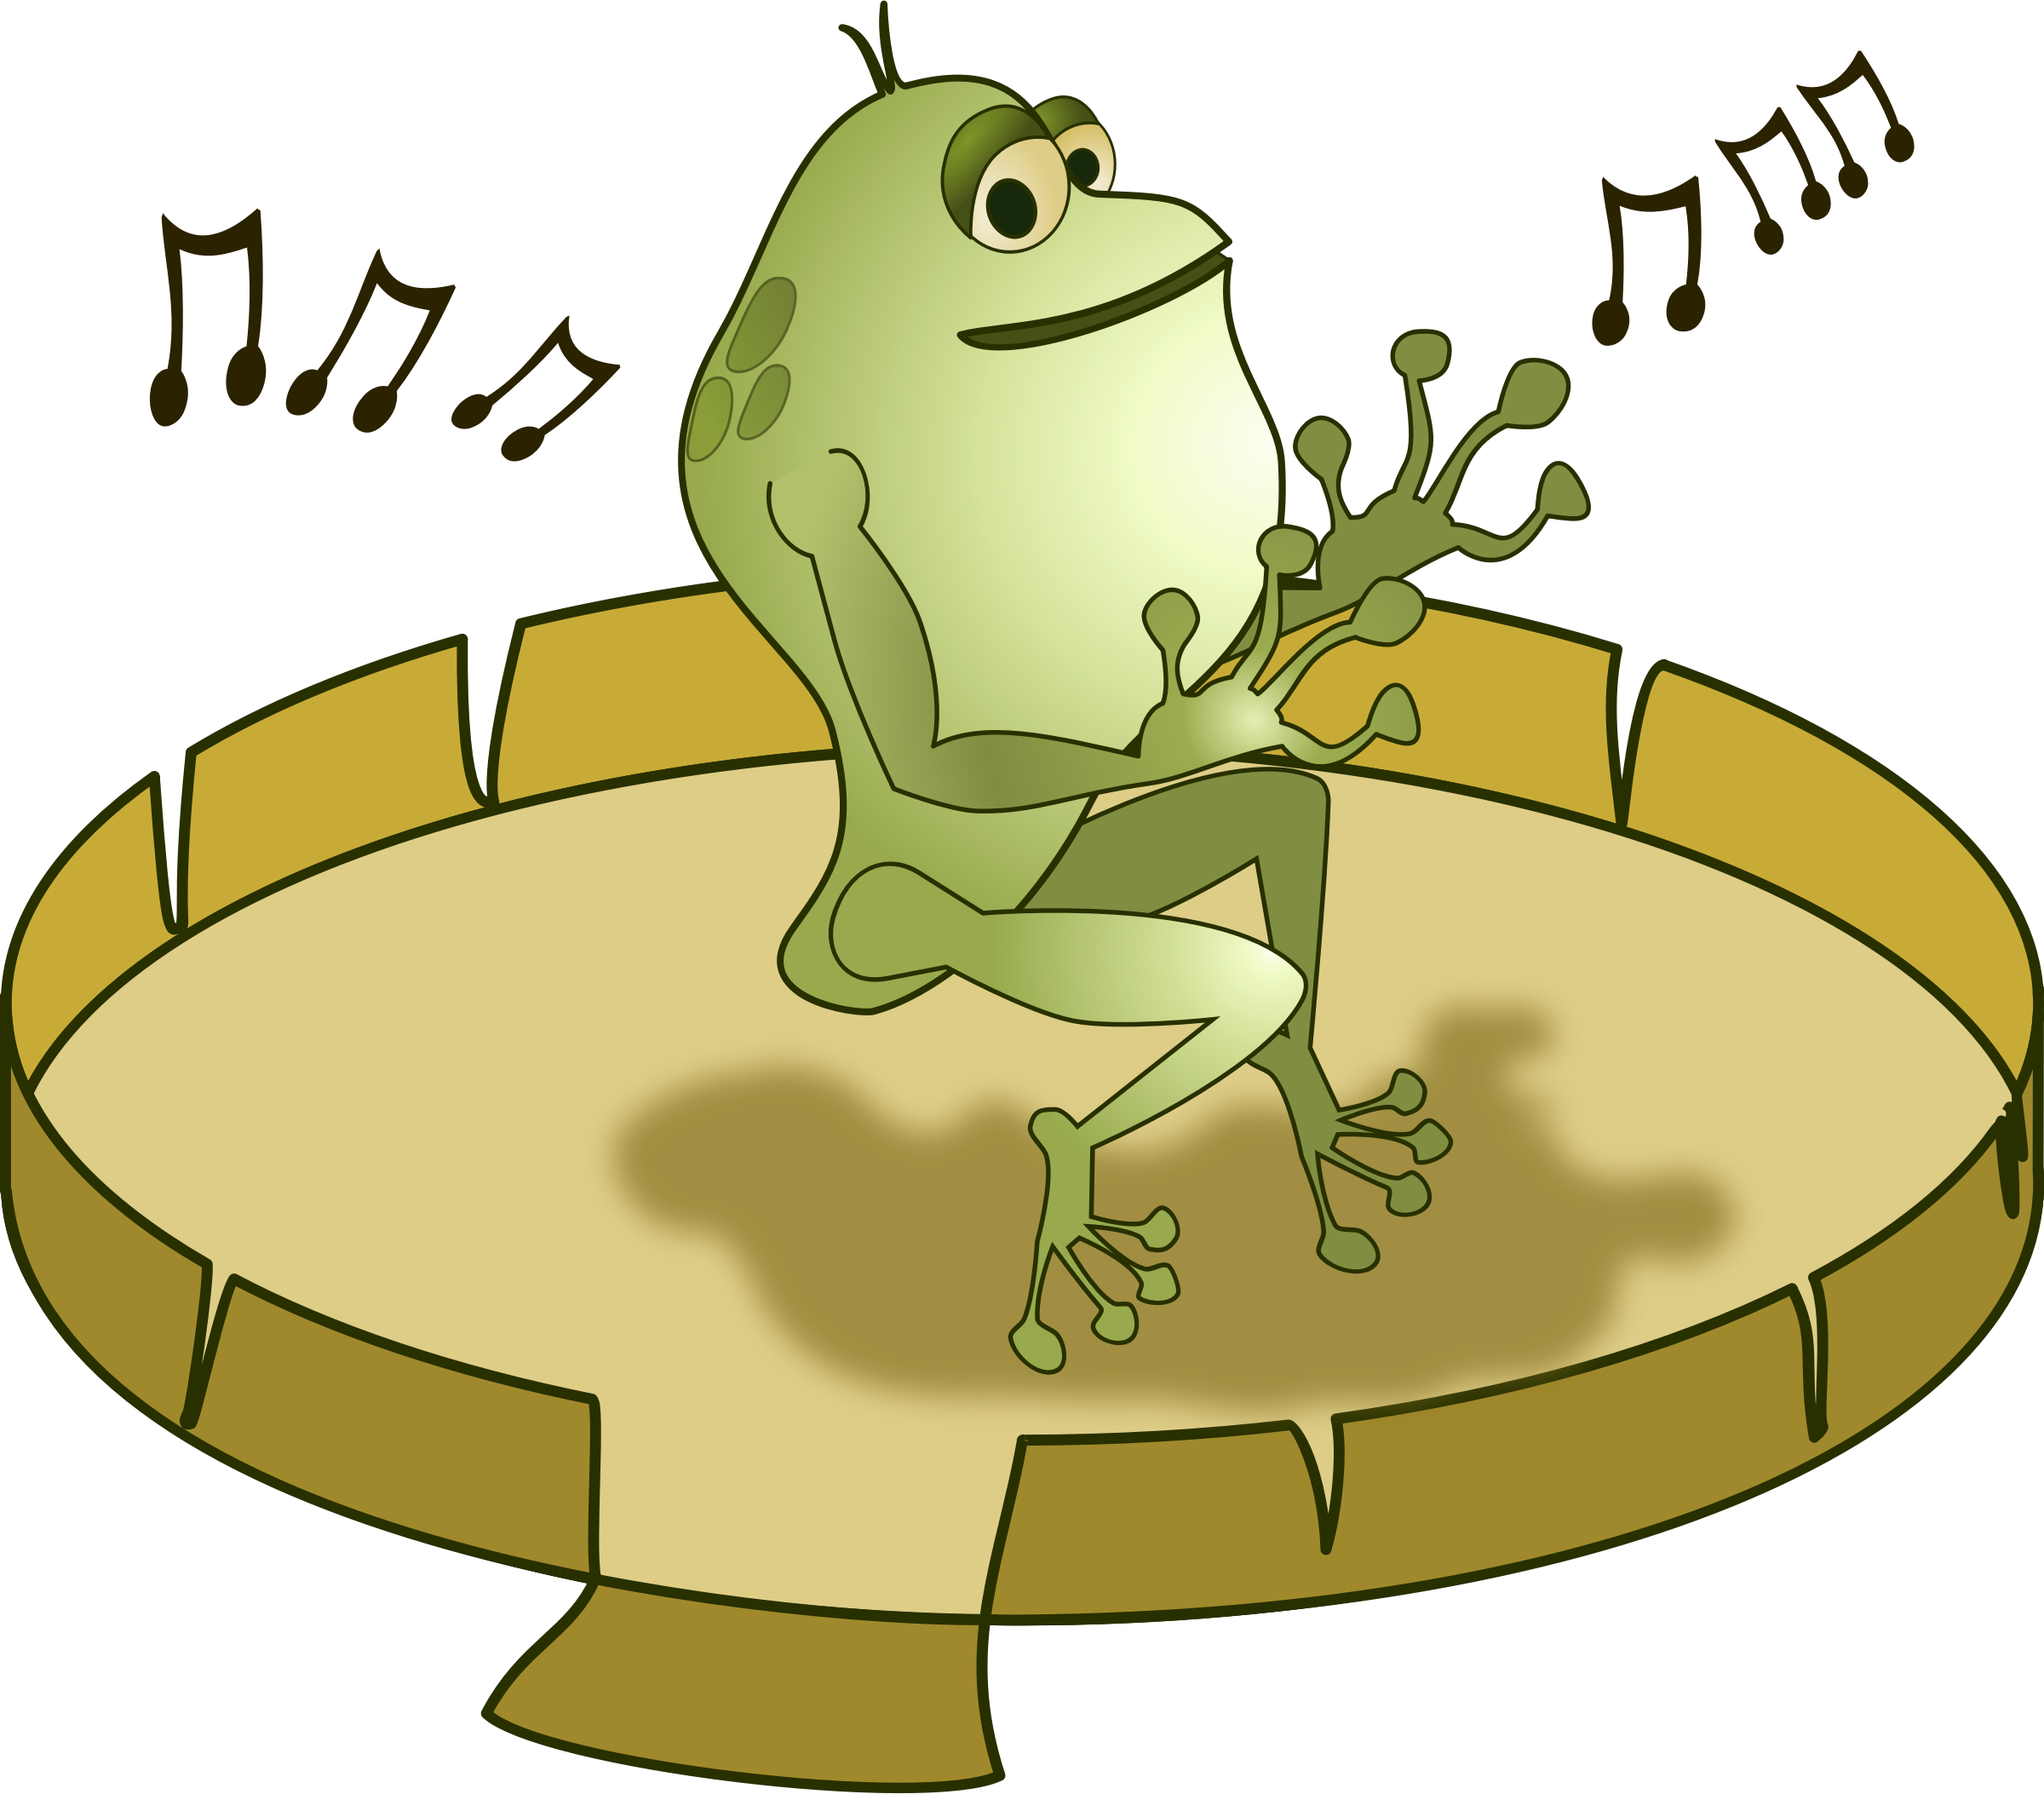 Frog Dancer by GusEinstein